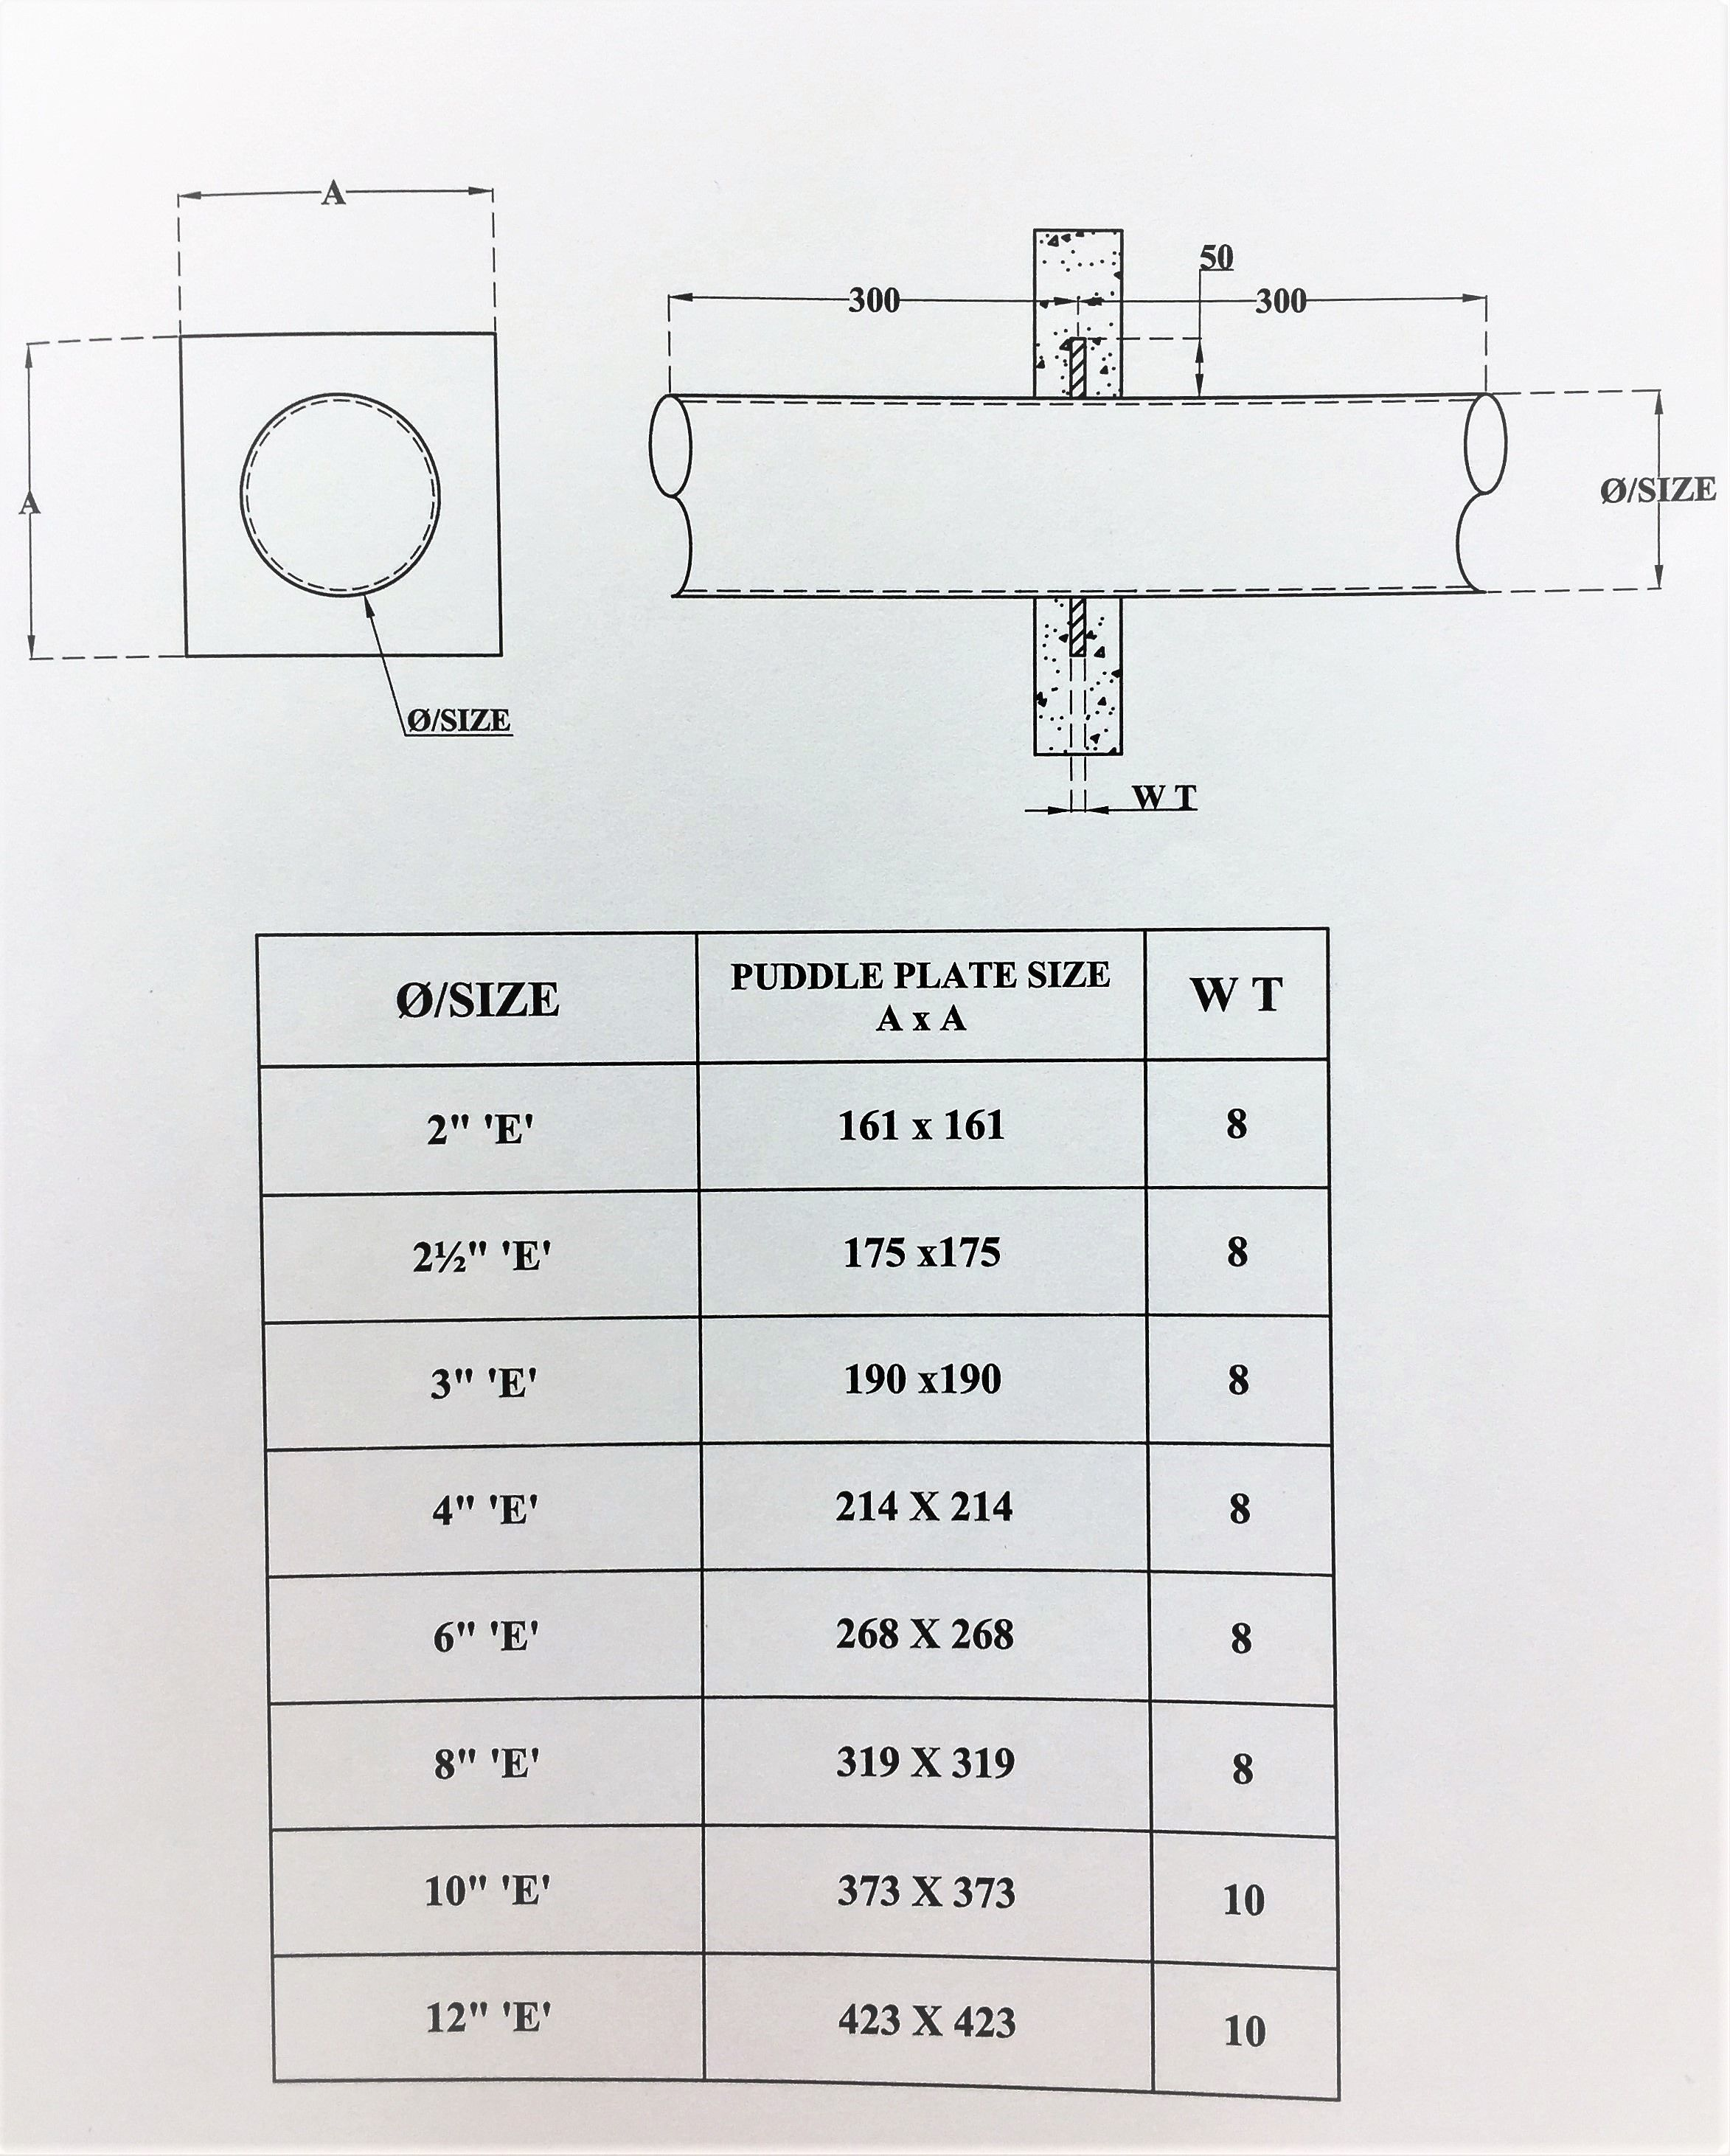 small resolution of sizing the flange of the puddle flange according pipe size